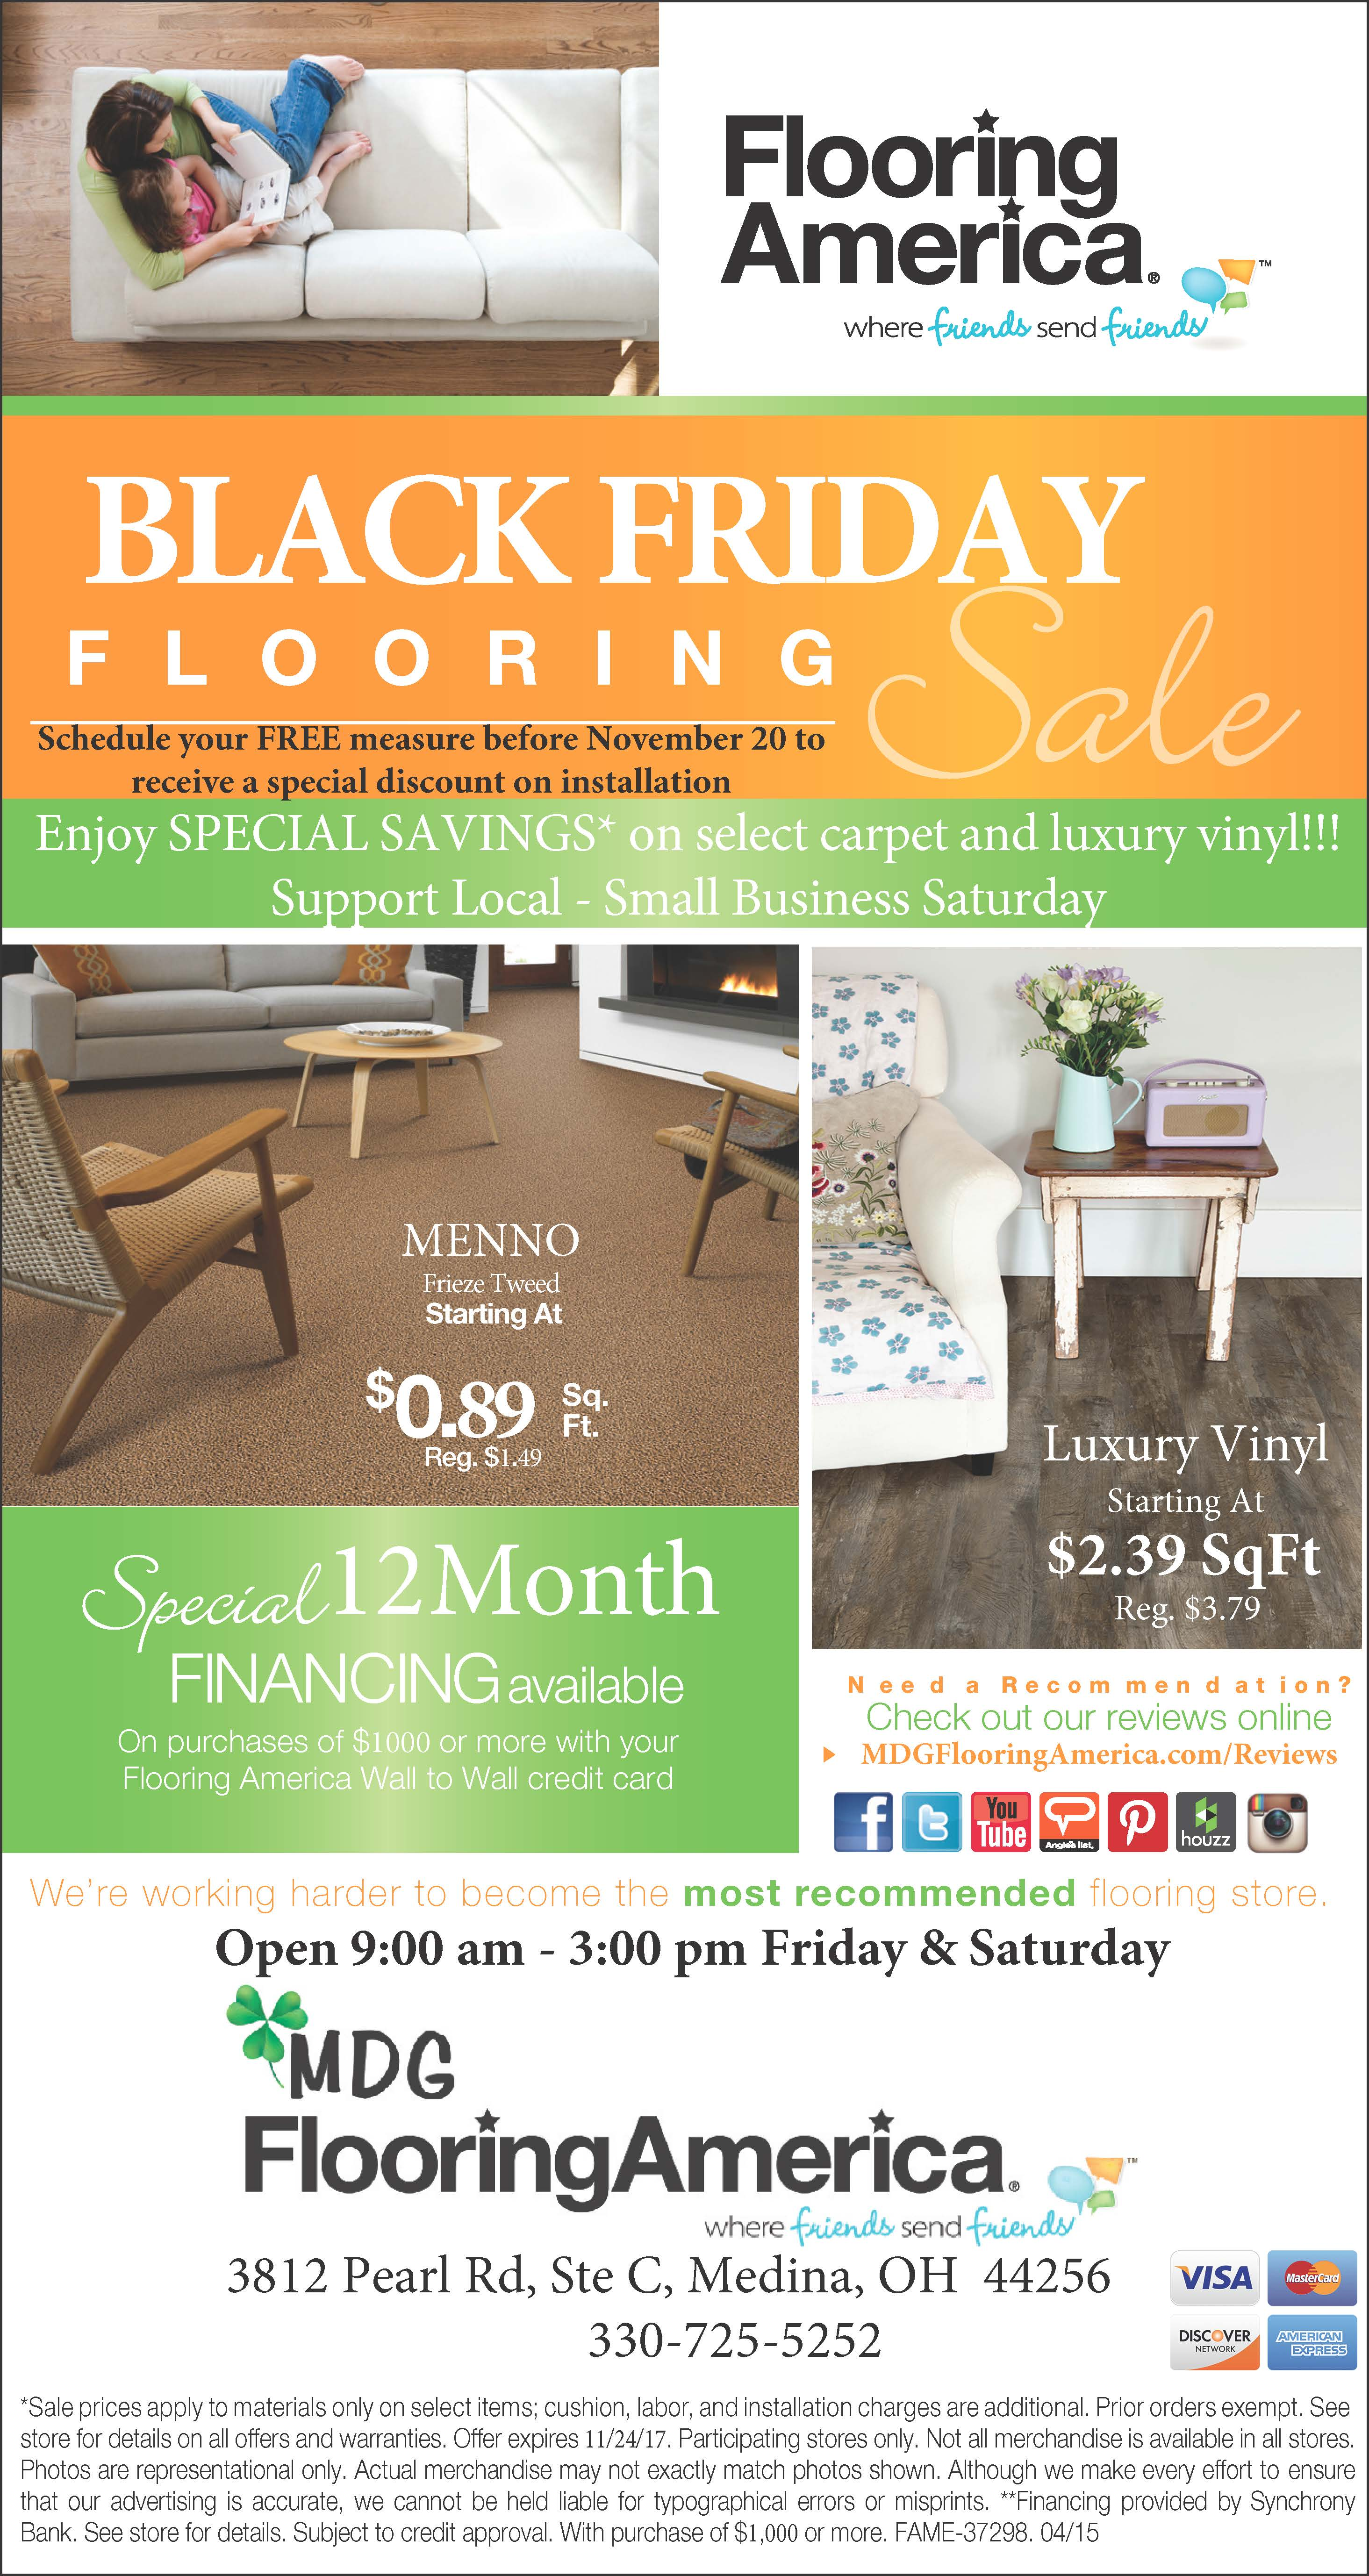 Black Friday Flooring Sale!